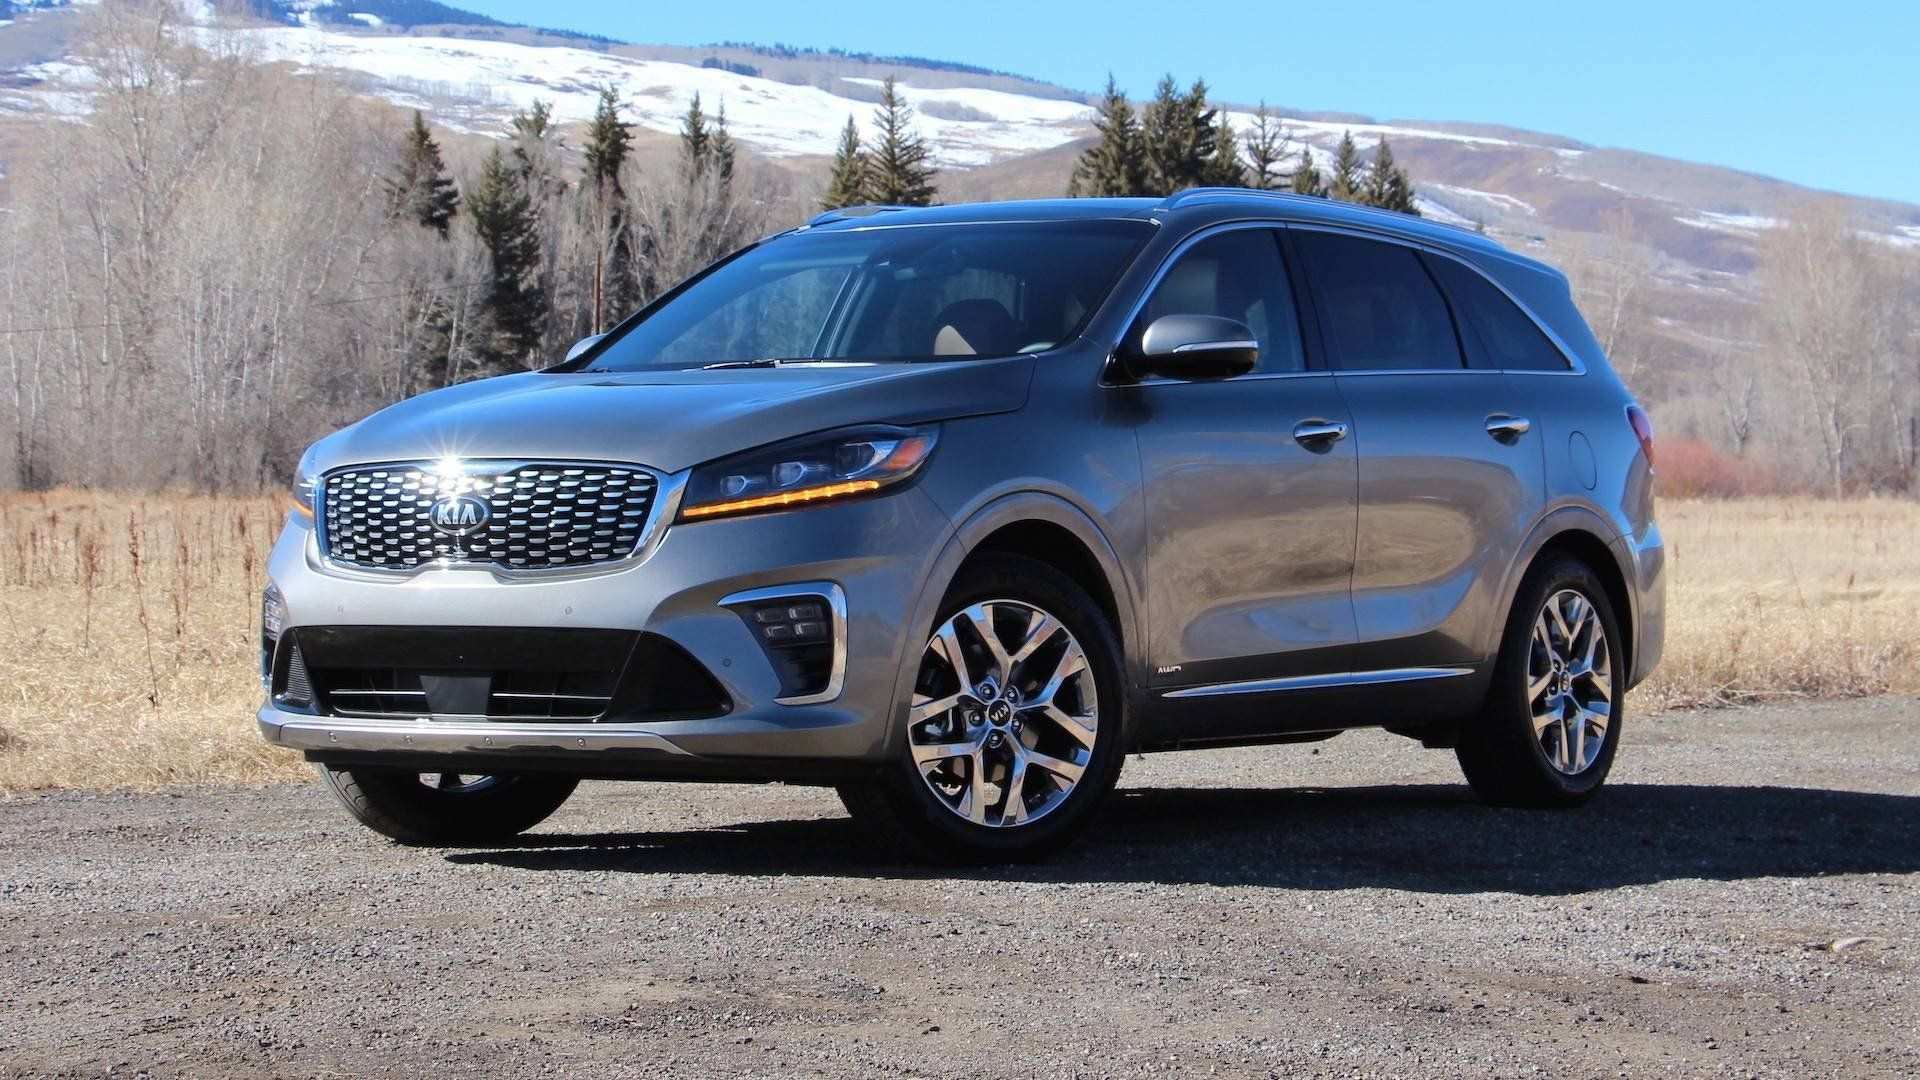 19 Gallery of 2020 Kia Sorento Towing Capacity Picture by 2020 Kia Sorento Towing Capacity